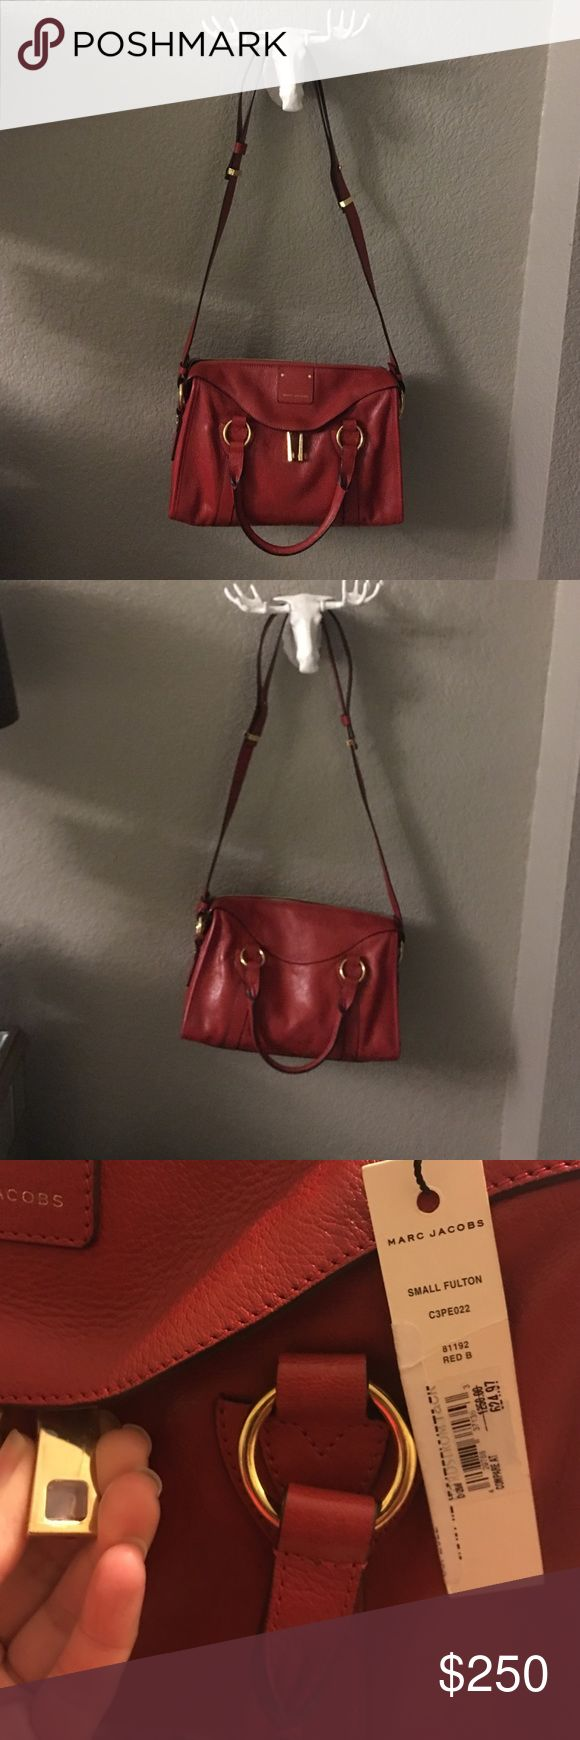 Marc jacobs handbag Still has the plastic on the hardware and Nordstrom rack tags attached. Made in Italy with gold plated hardware!! No trades please. Marc Jacobs Bags